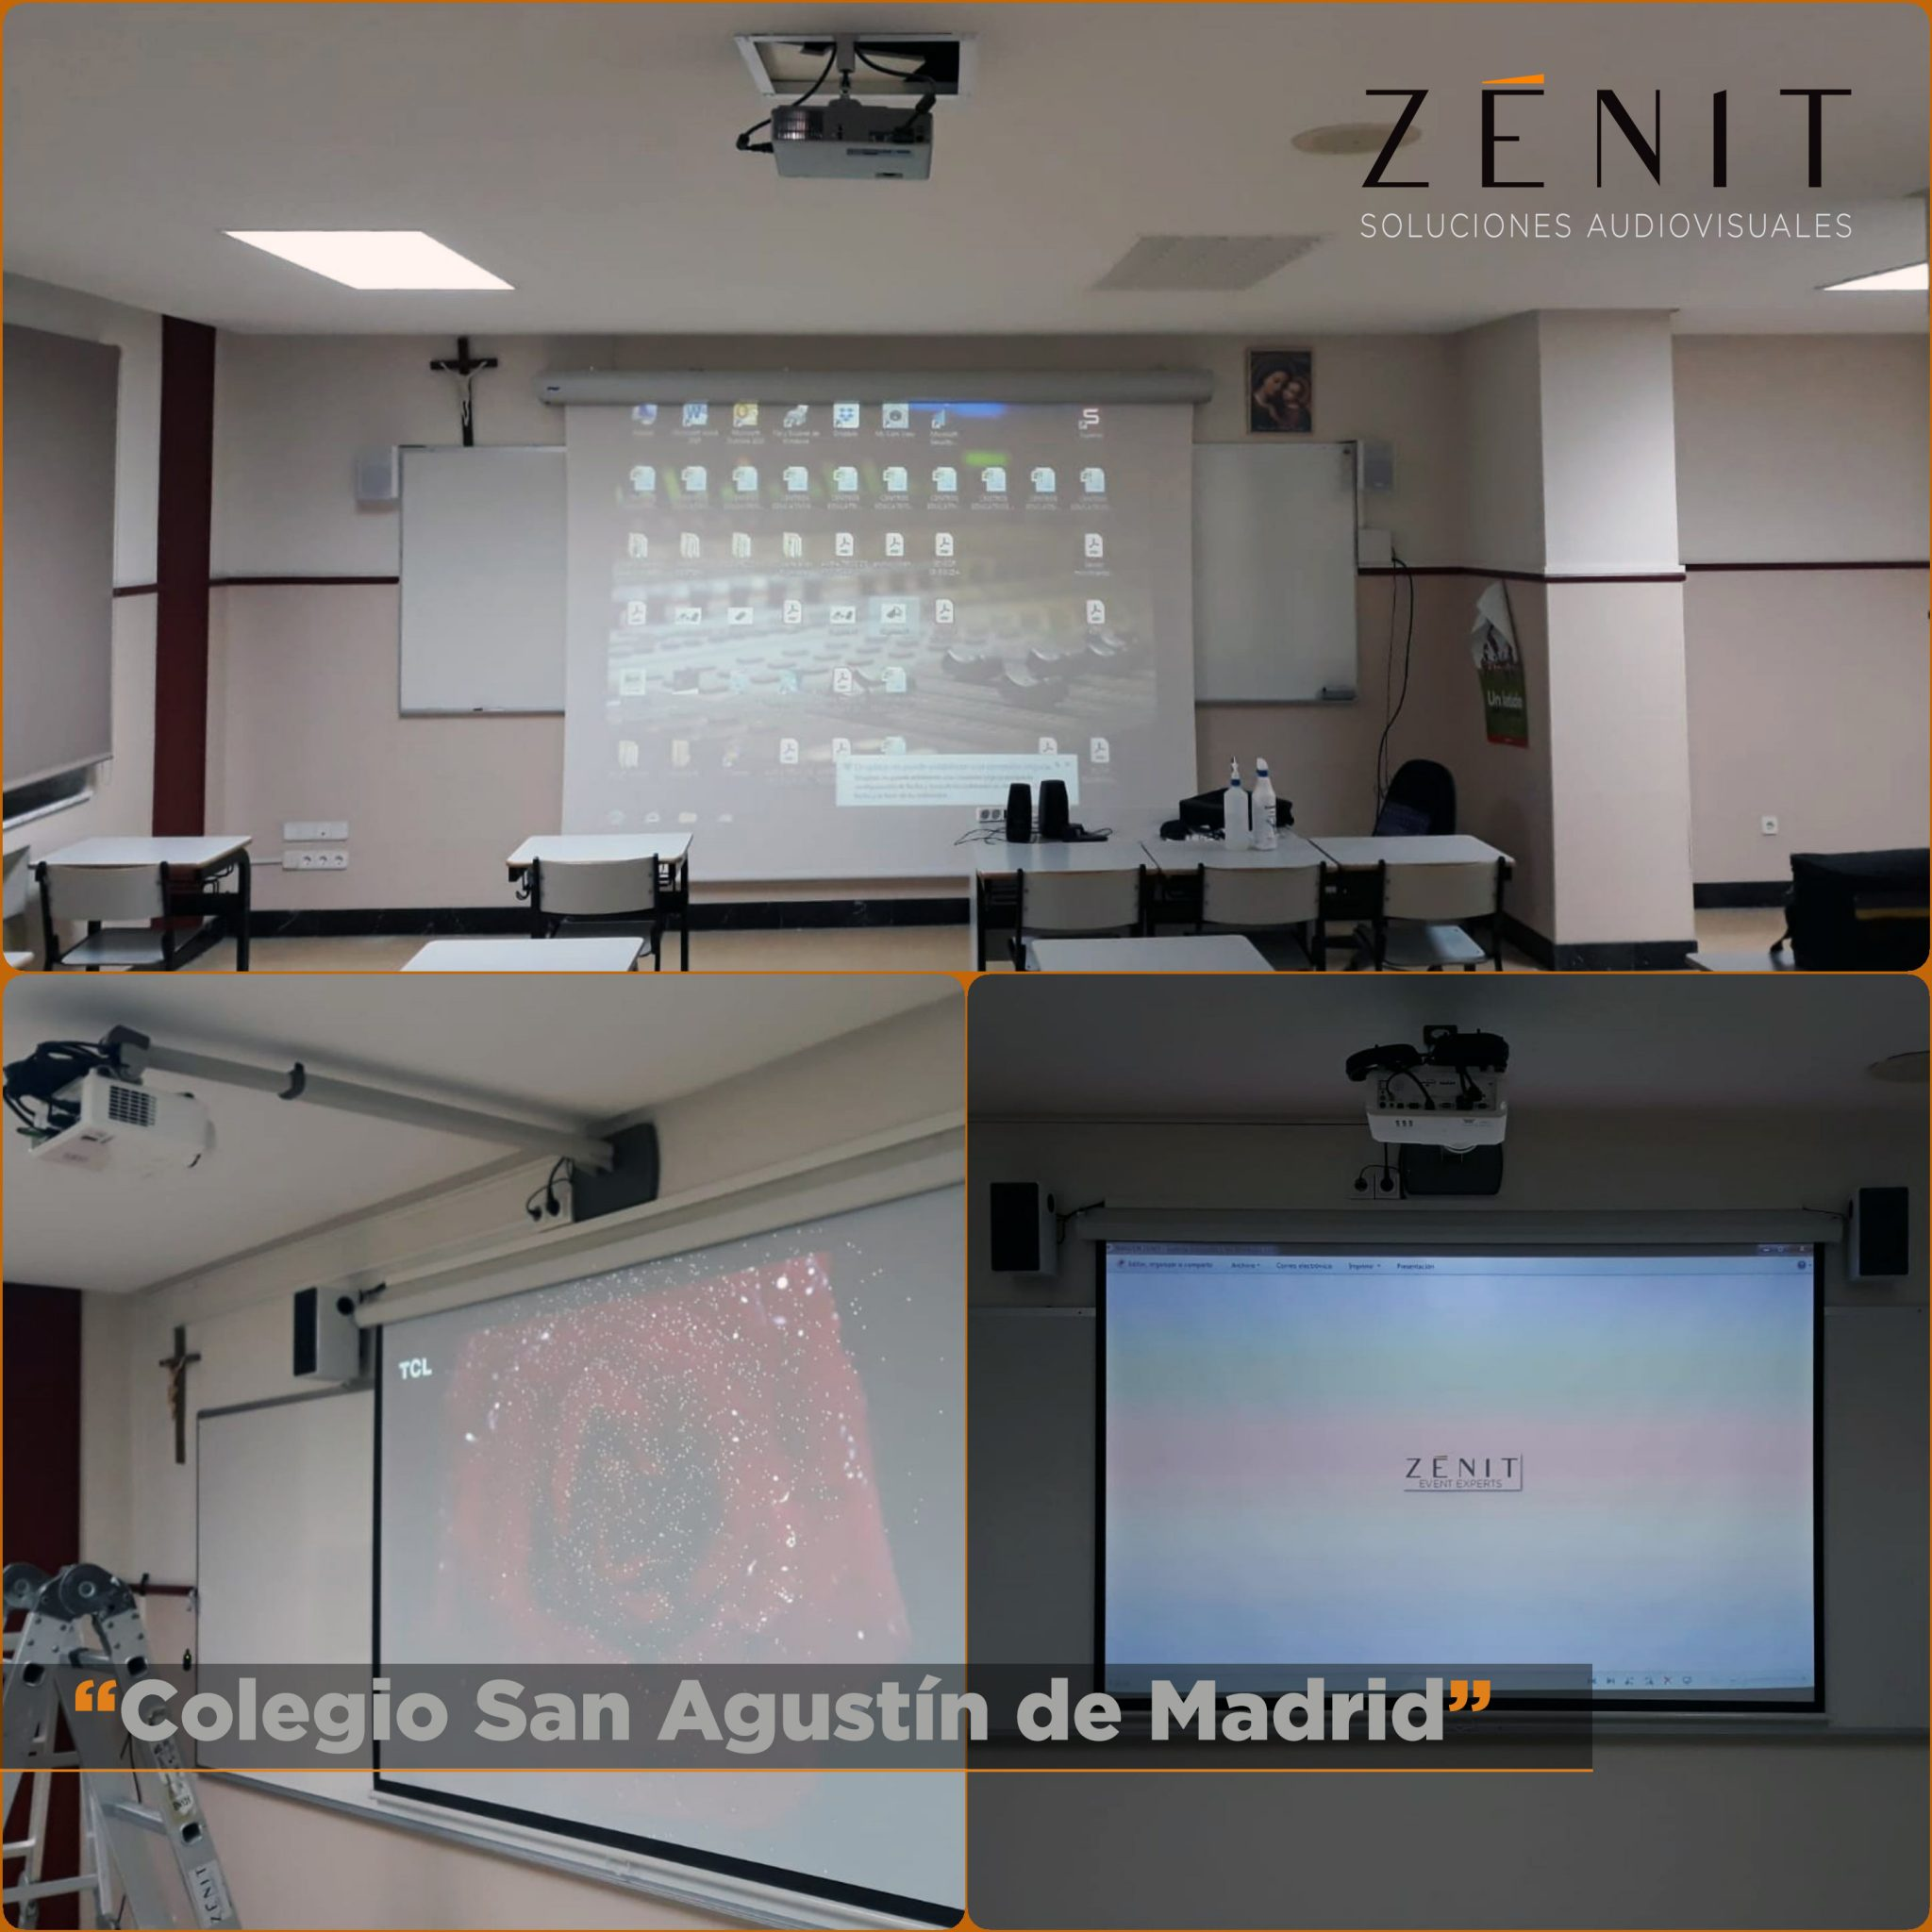 Zenit Audiovisuales